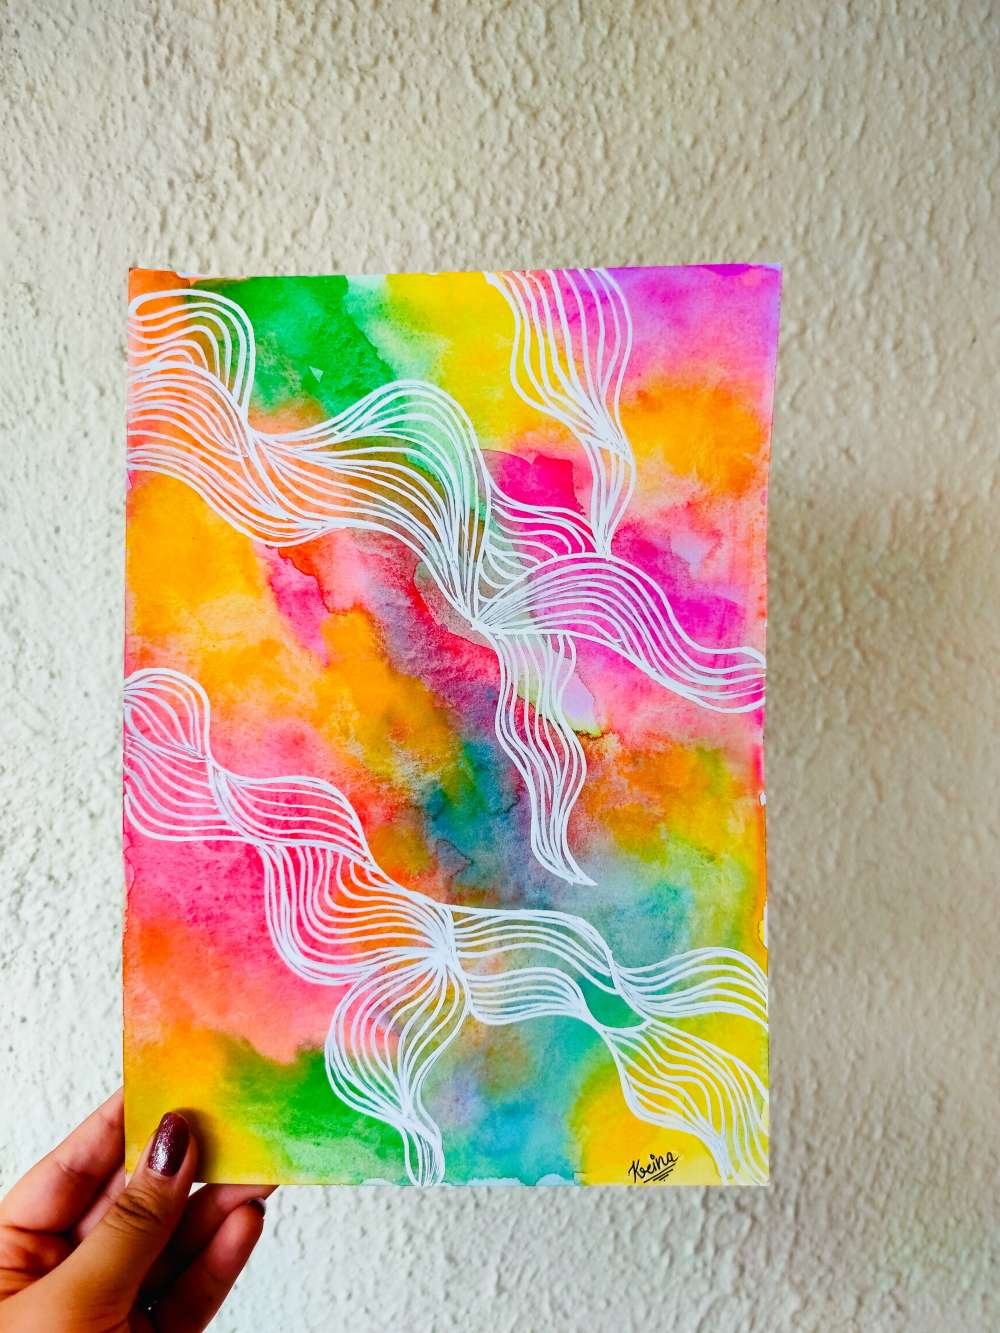 Watercolour background with line art illustration